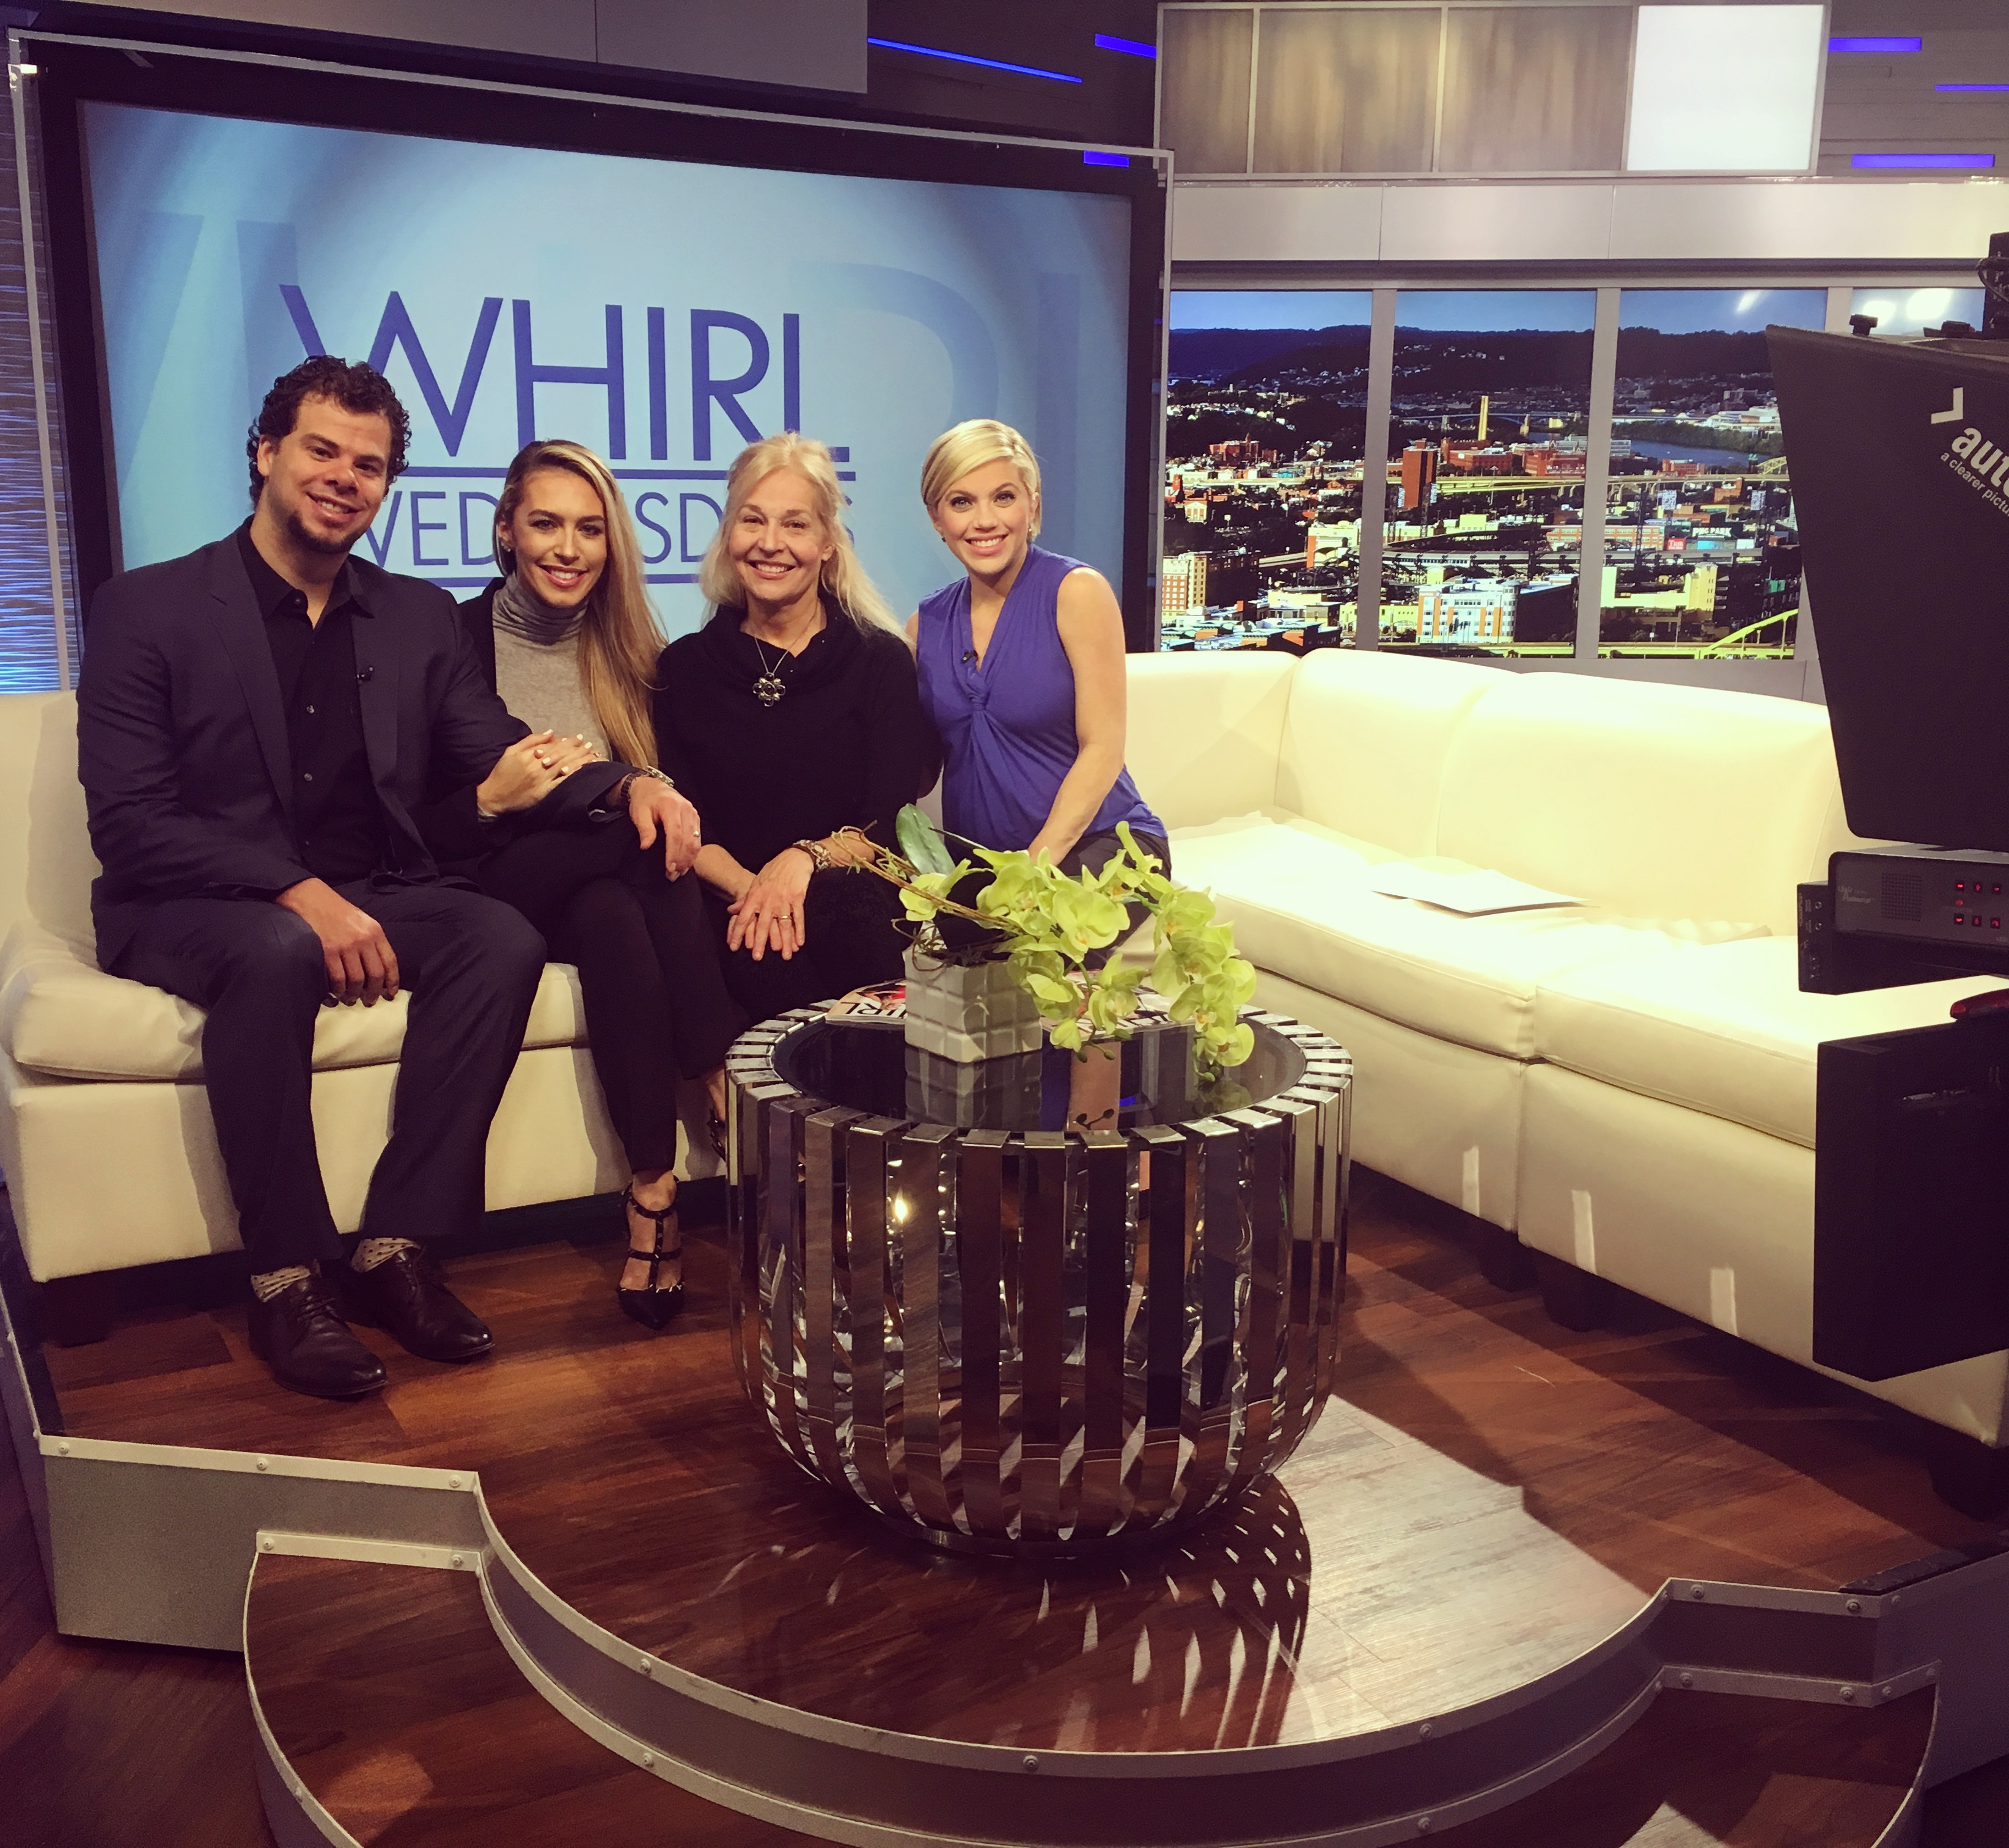 WHIRL Wednesday on Pittsburgh Today Live